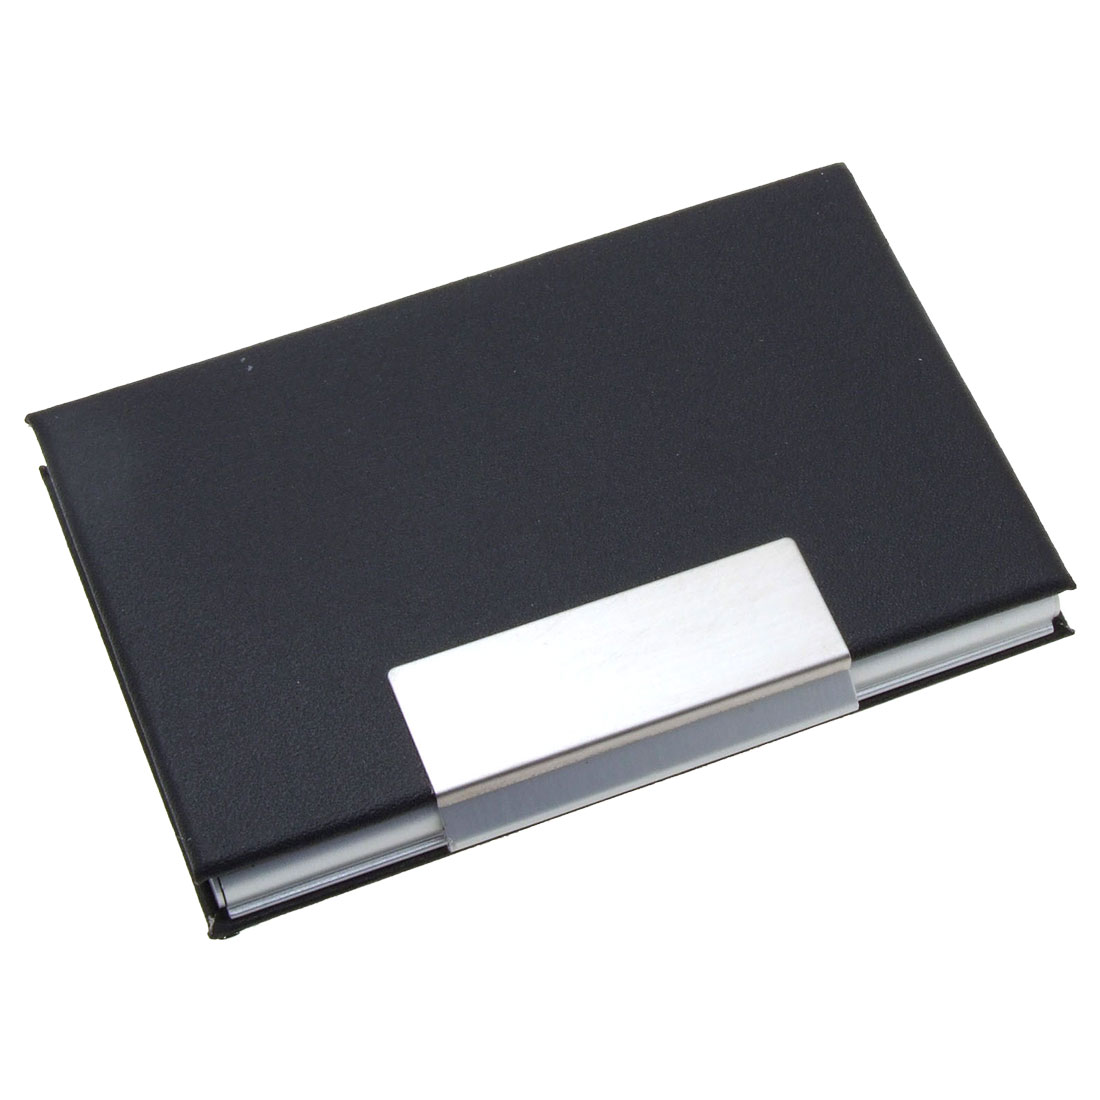 Stylish Metal Business Cards/Magnet Card/ ID Card Holder Case Coated Leather Black